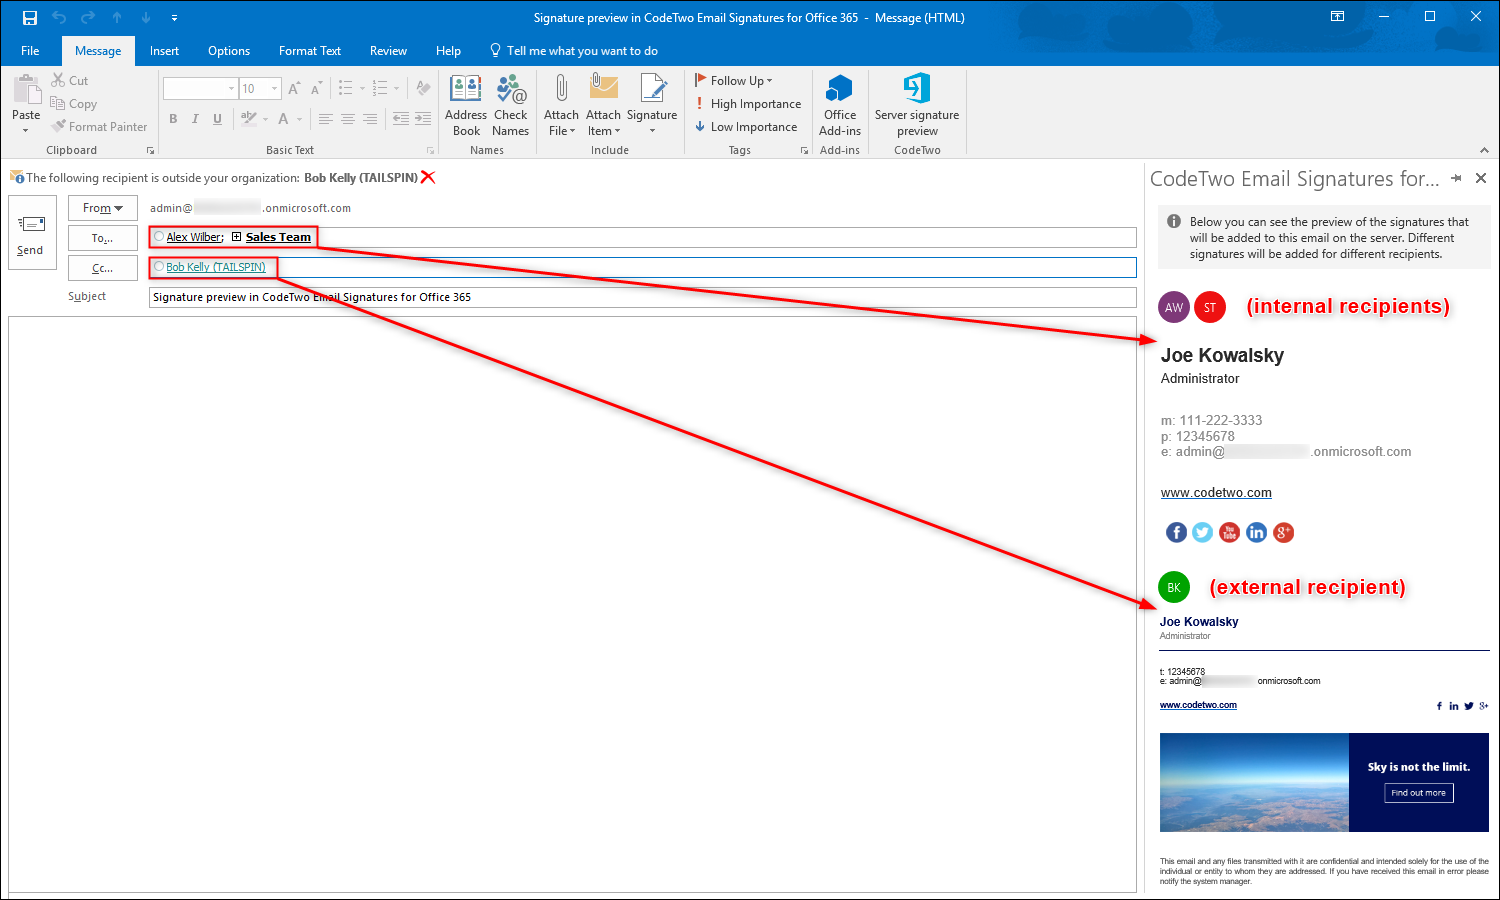 Signature management - Signature preview in Outlook - Previewing